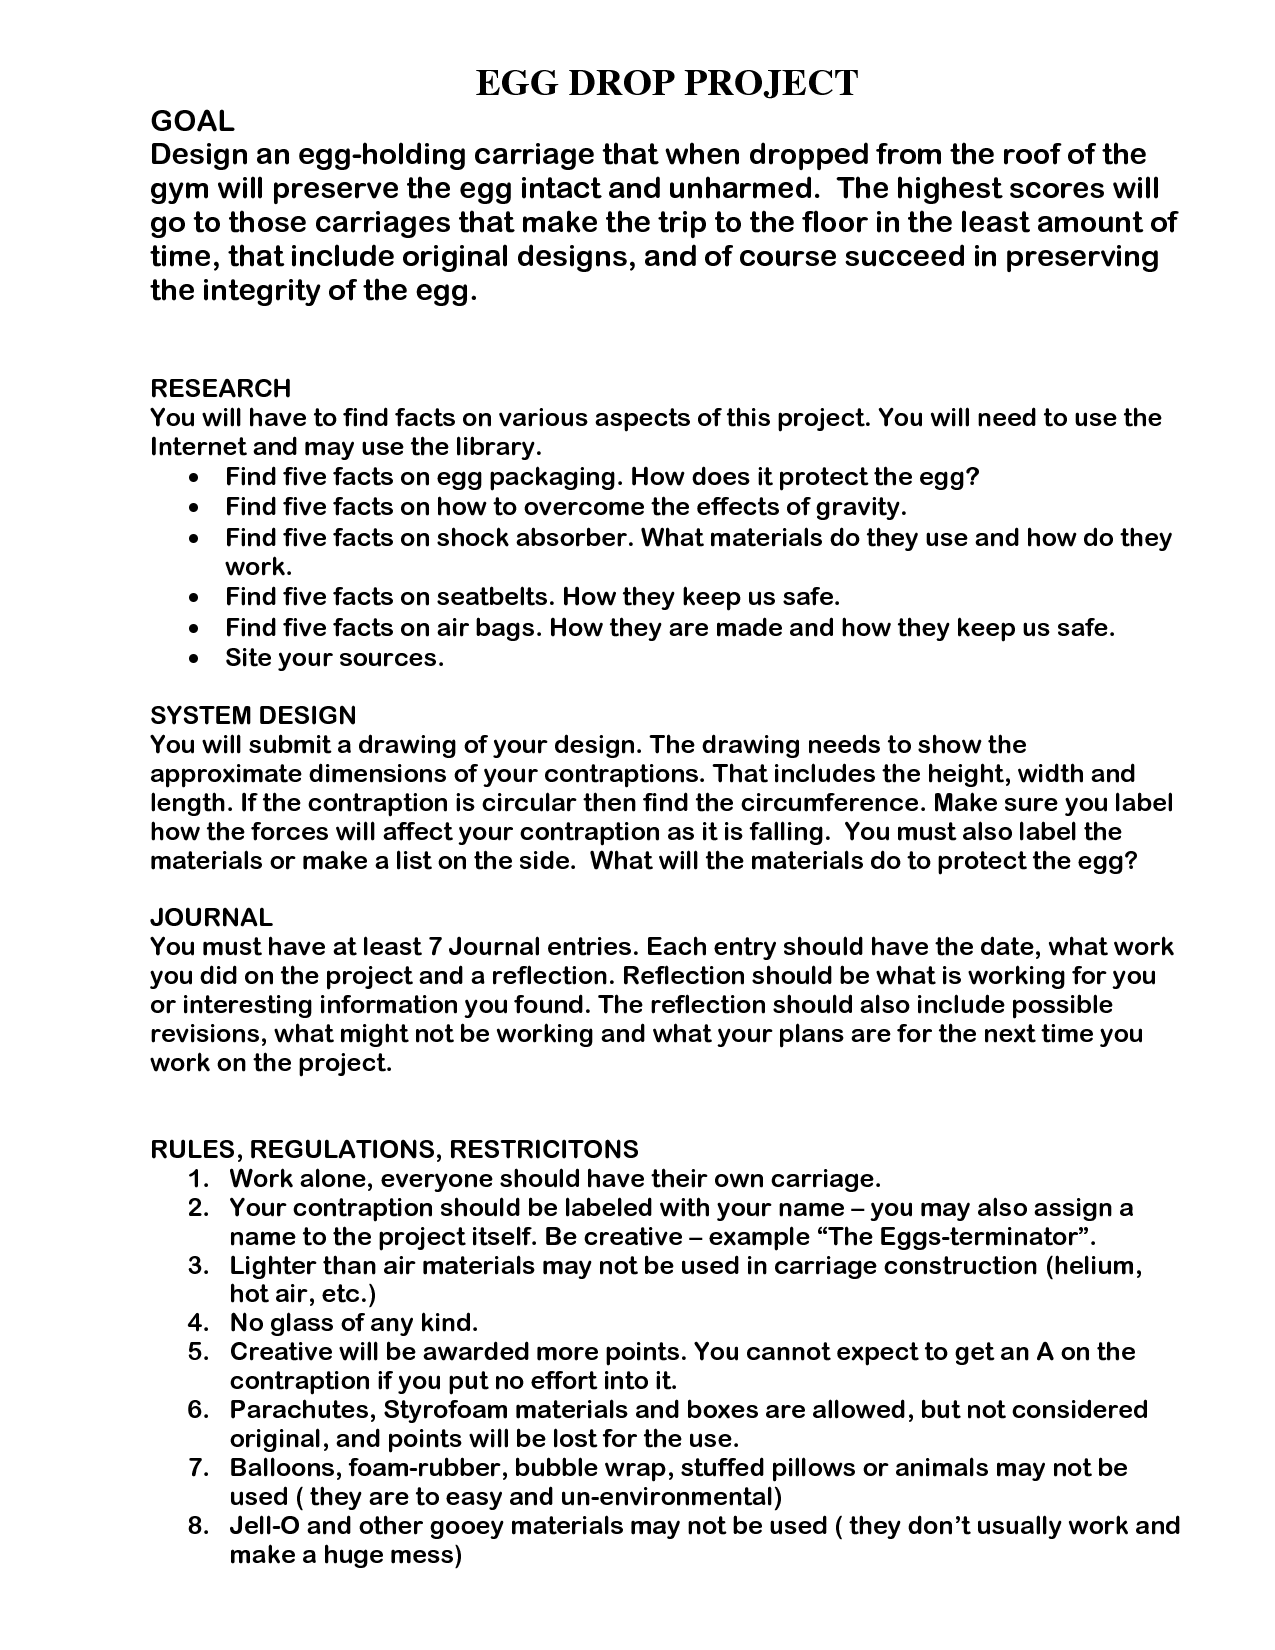 Pin By Chris Ruszczyk On Egg Drop Egg Drop Project Egg Drop Science Projects